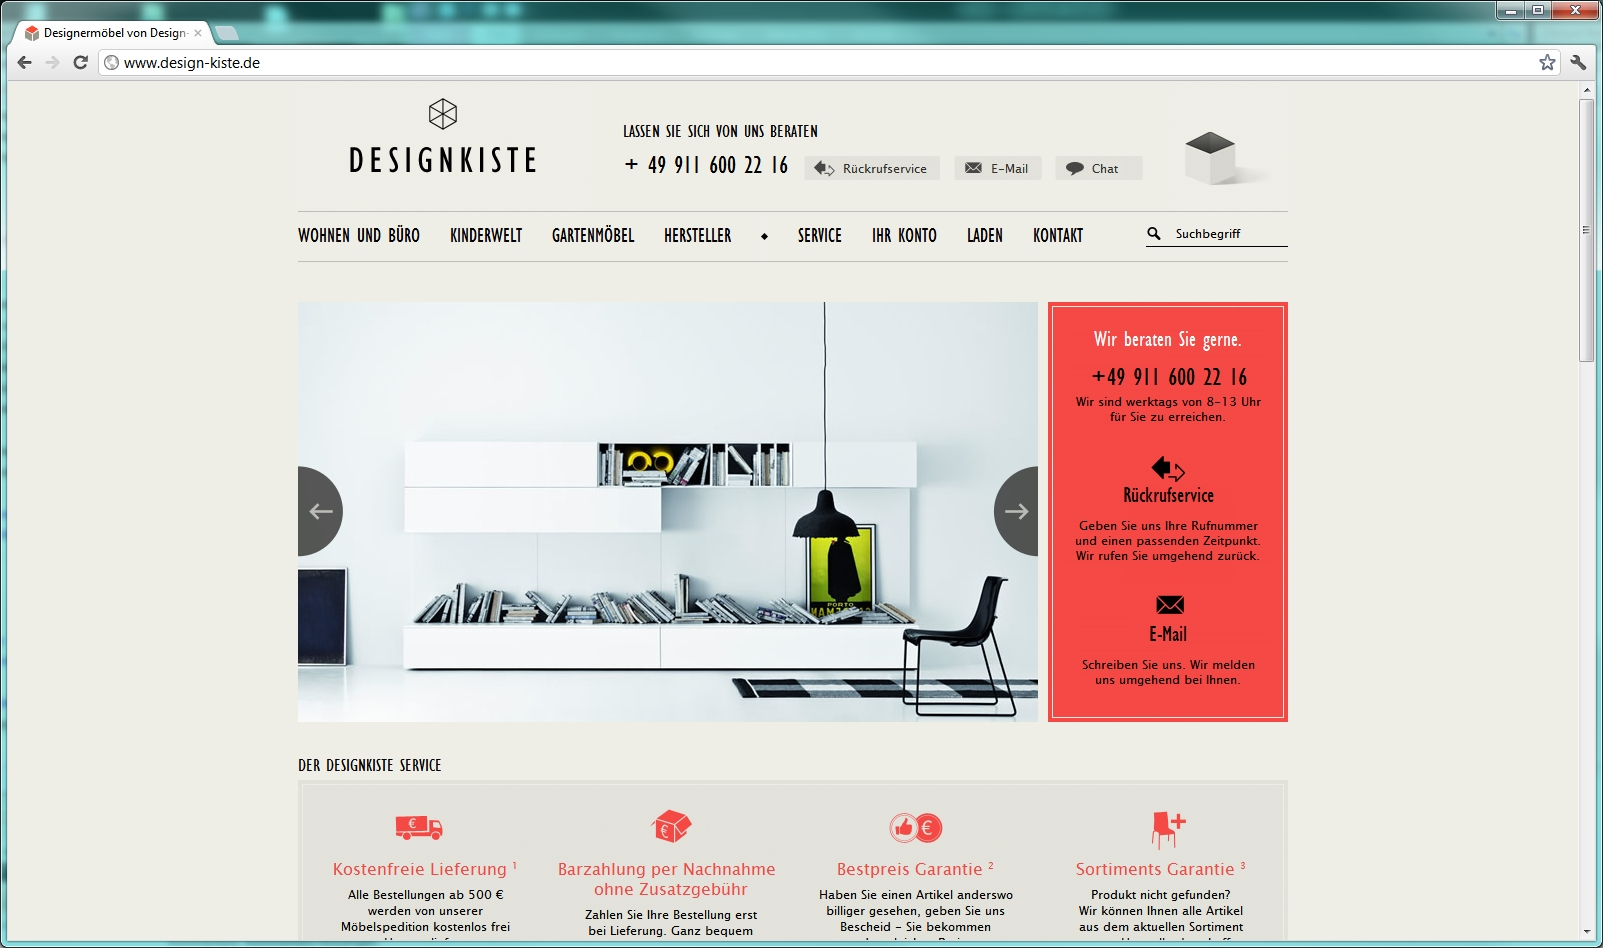 Onlineshop webdesign vielf ltige m glichkeiten for Outlet design online